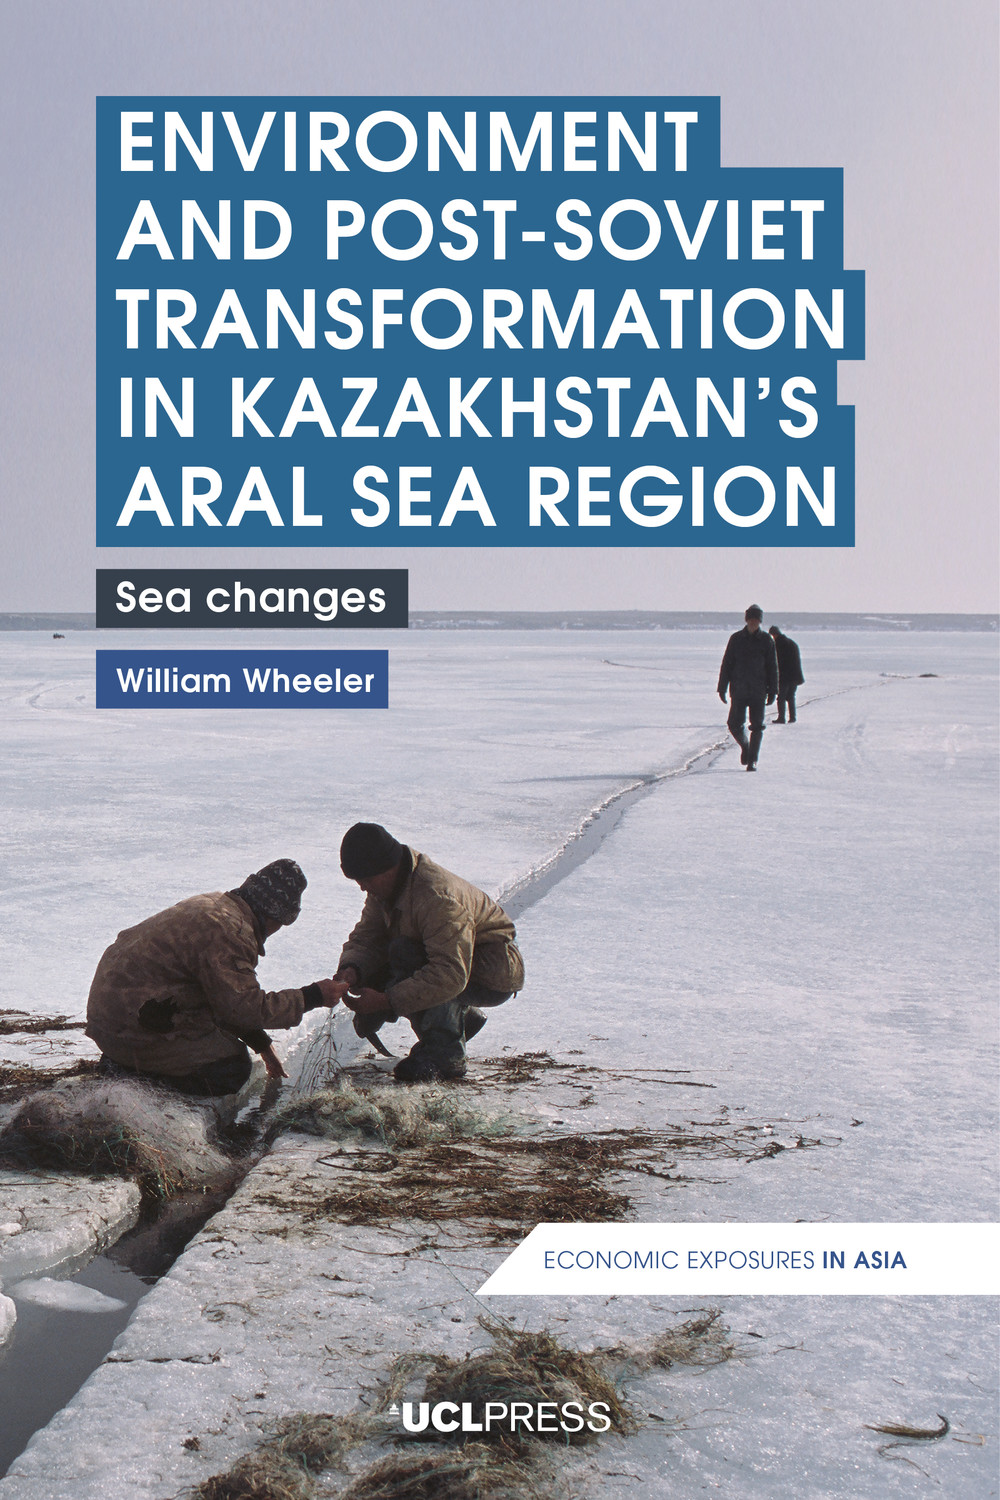 Environment and Post-Soviet Transformation in Kazakhstan's Aral Sea Region